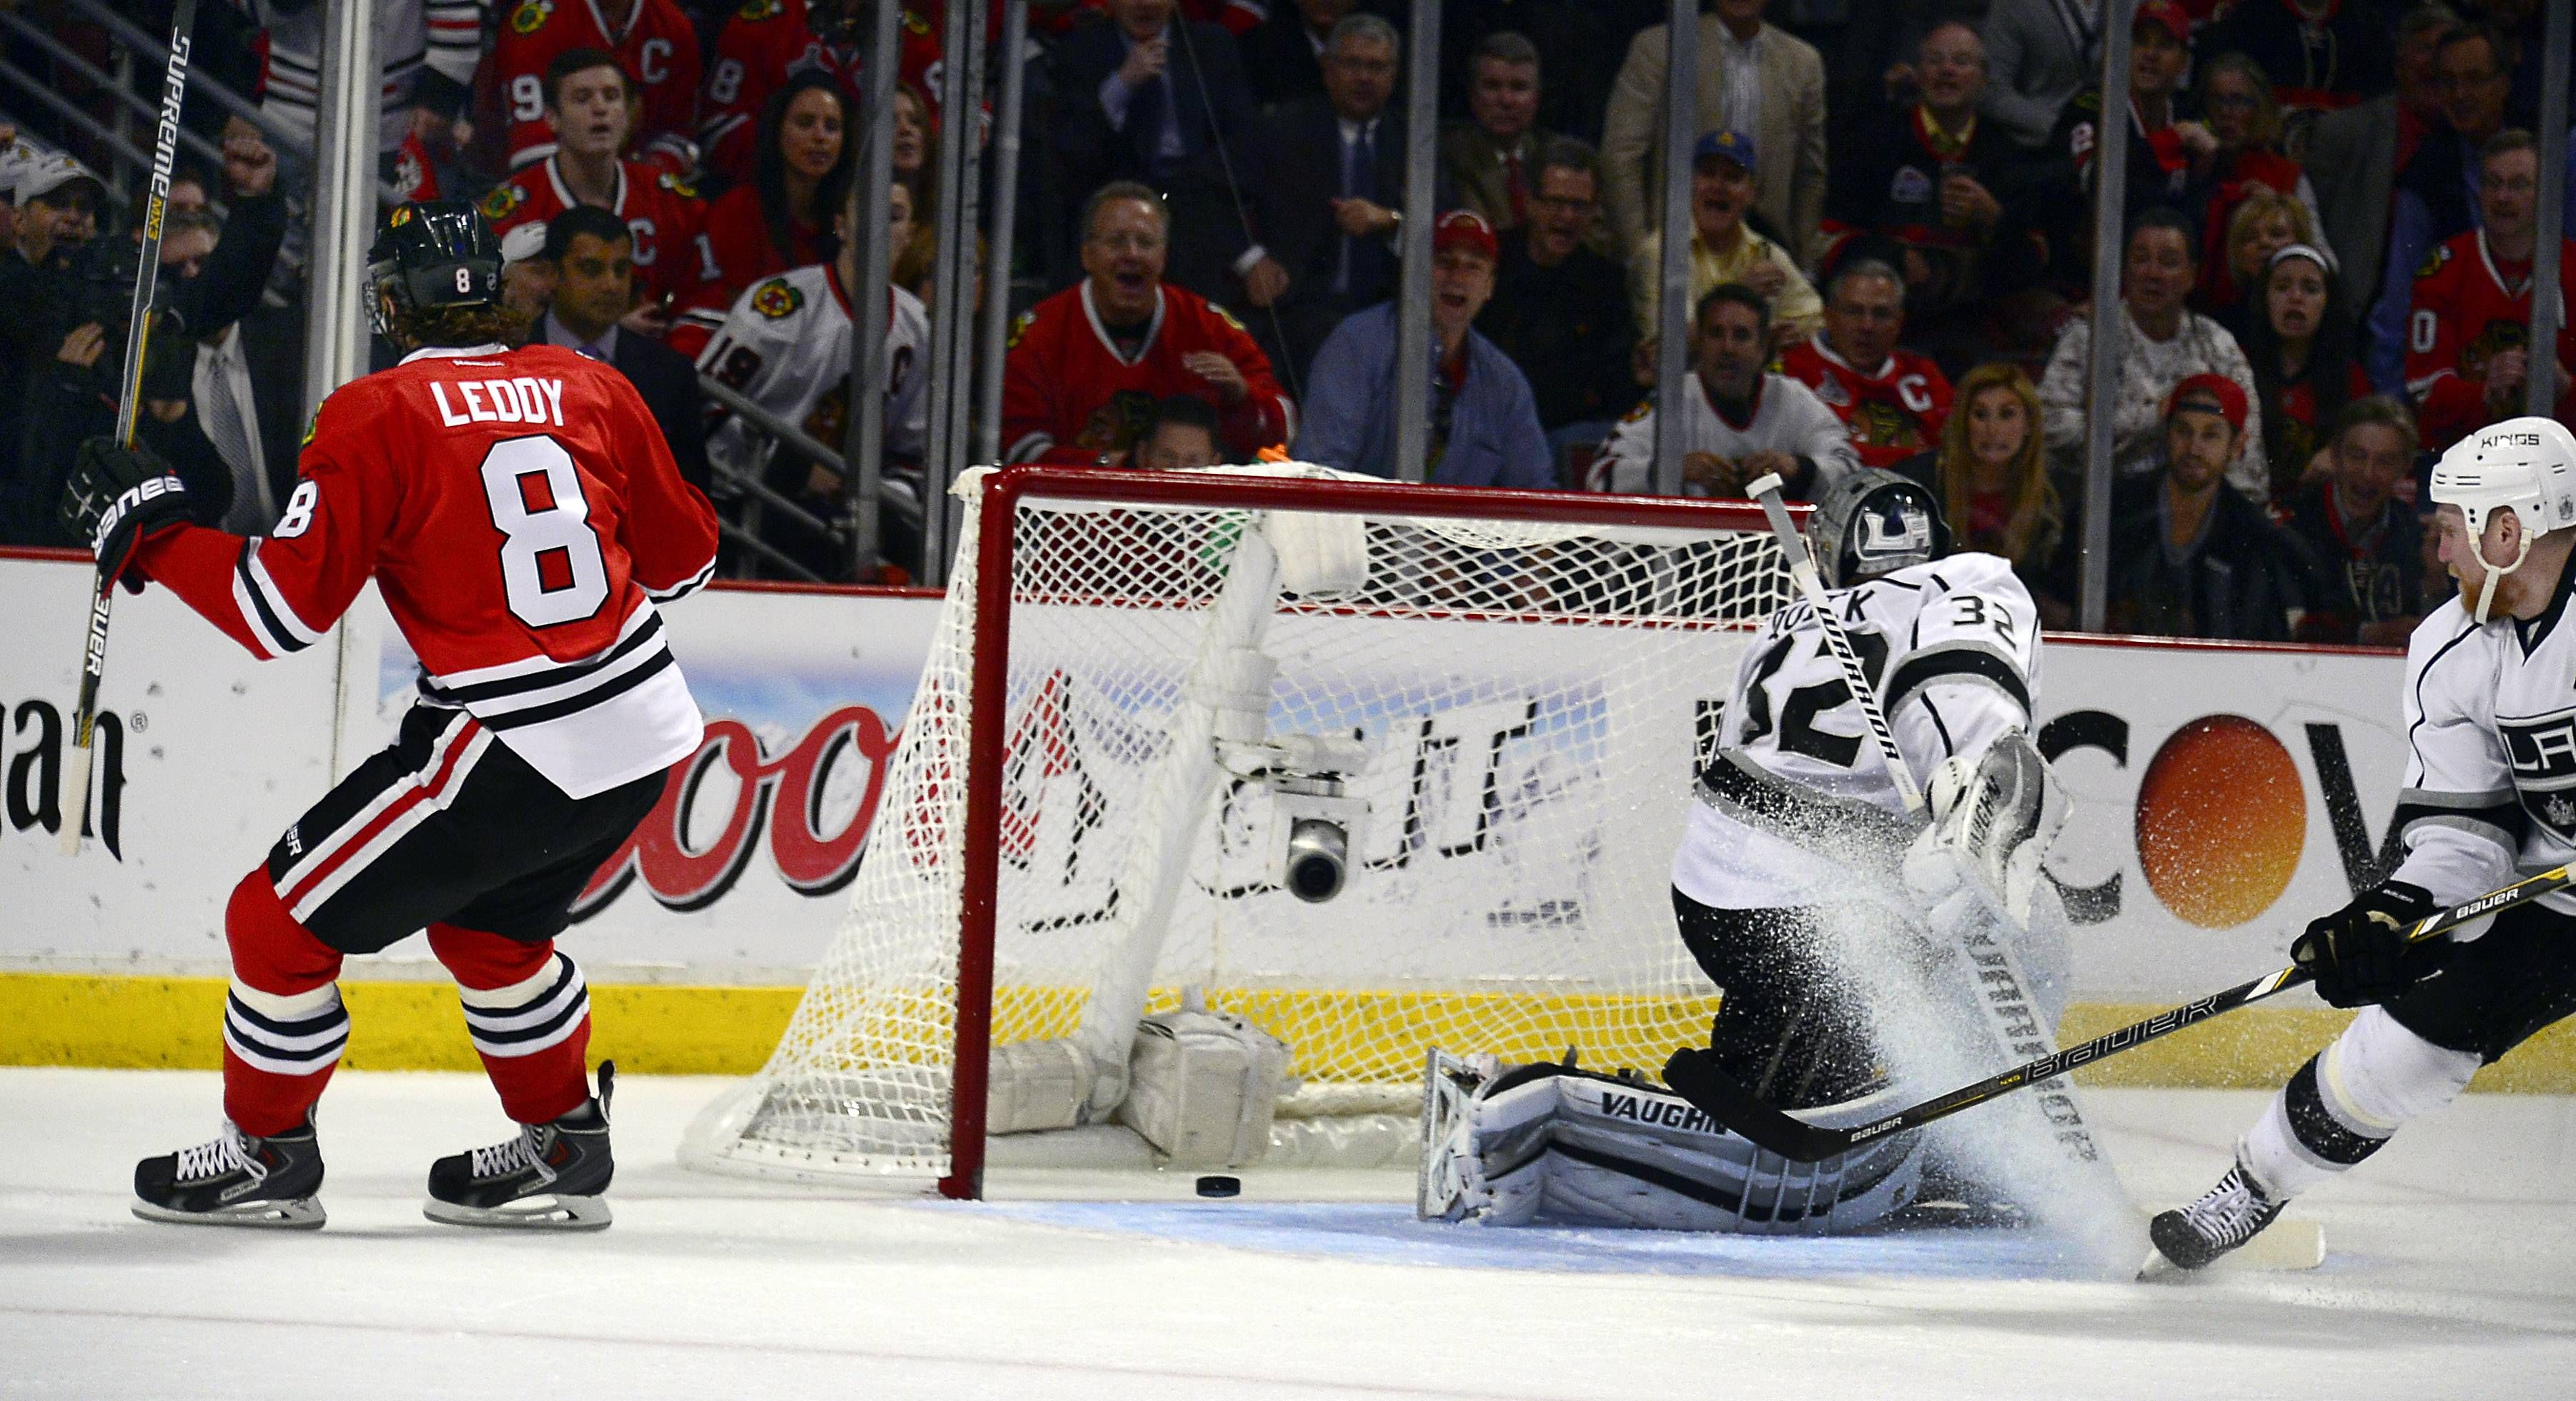 Nick Leddy delivers the first goal for the Blackhawks against the Kings on Wednesday night at the United Center. The Hawks dropped Game 2 of the Western Conference finals 6-2, and the series is tied at 1-1 heading to Los Angeles.